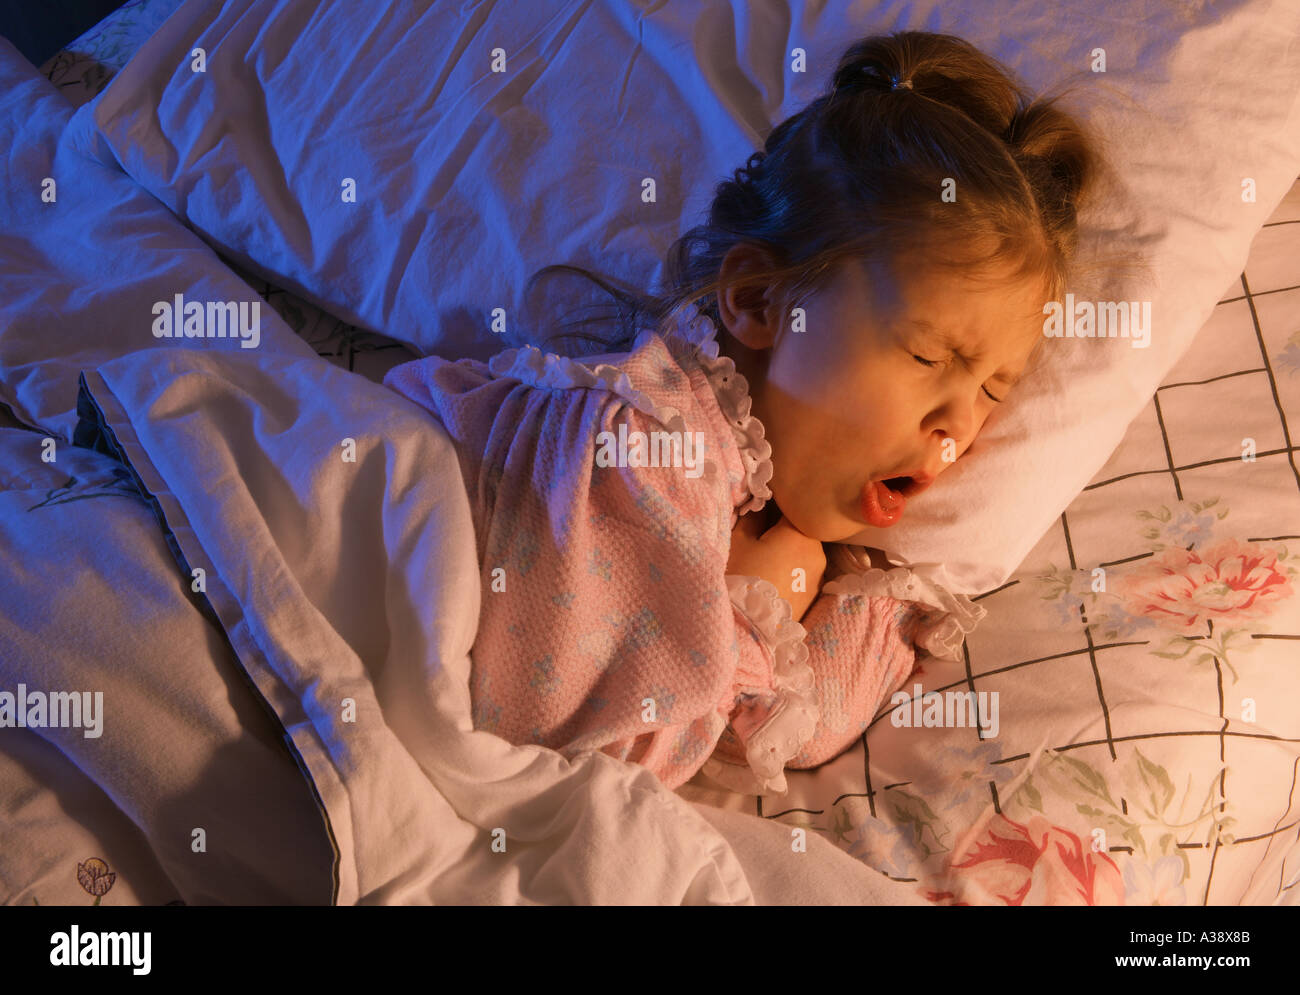 Sick child in bed - Stock Image